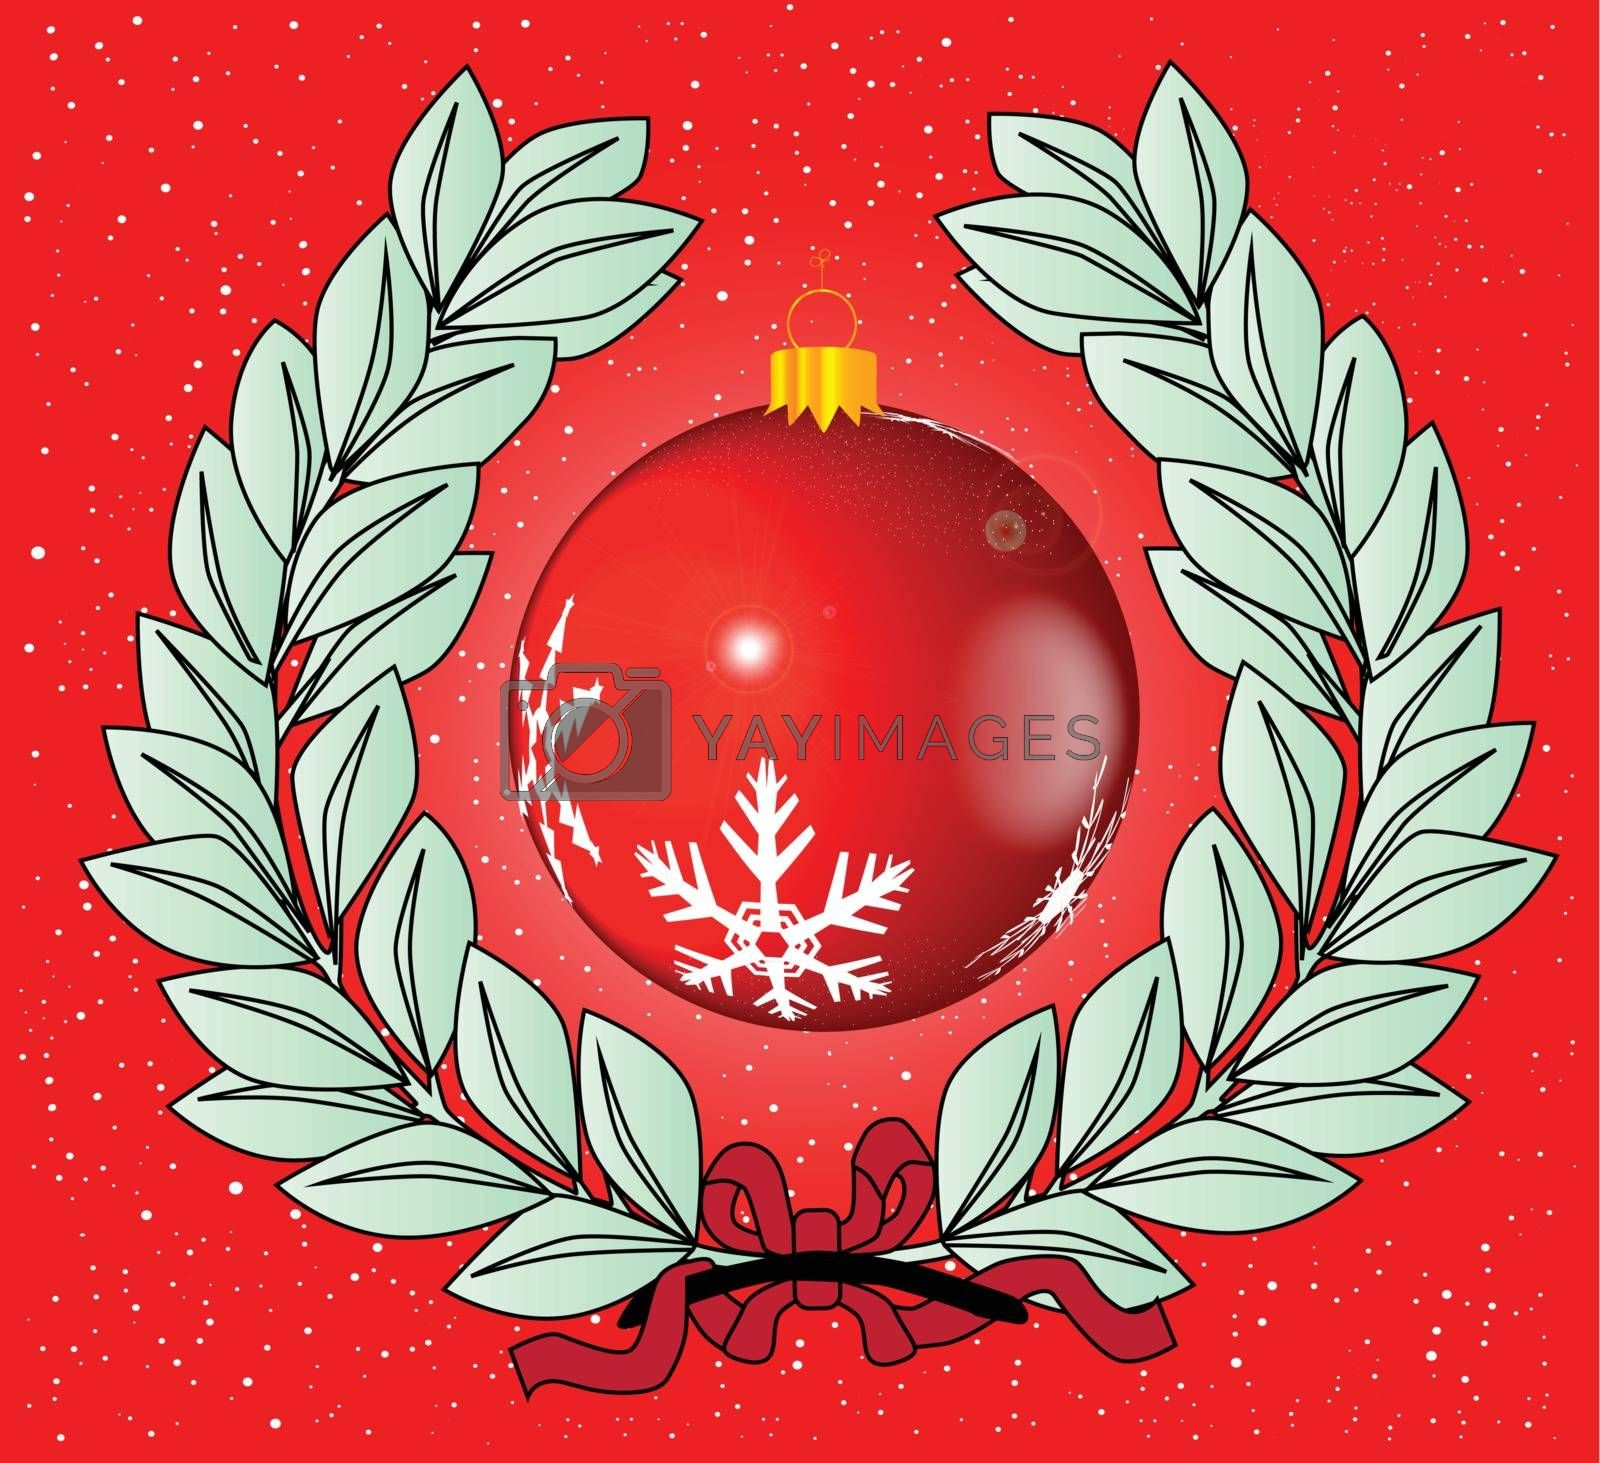 A Christmas wreath with a decoration set on a red and white background